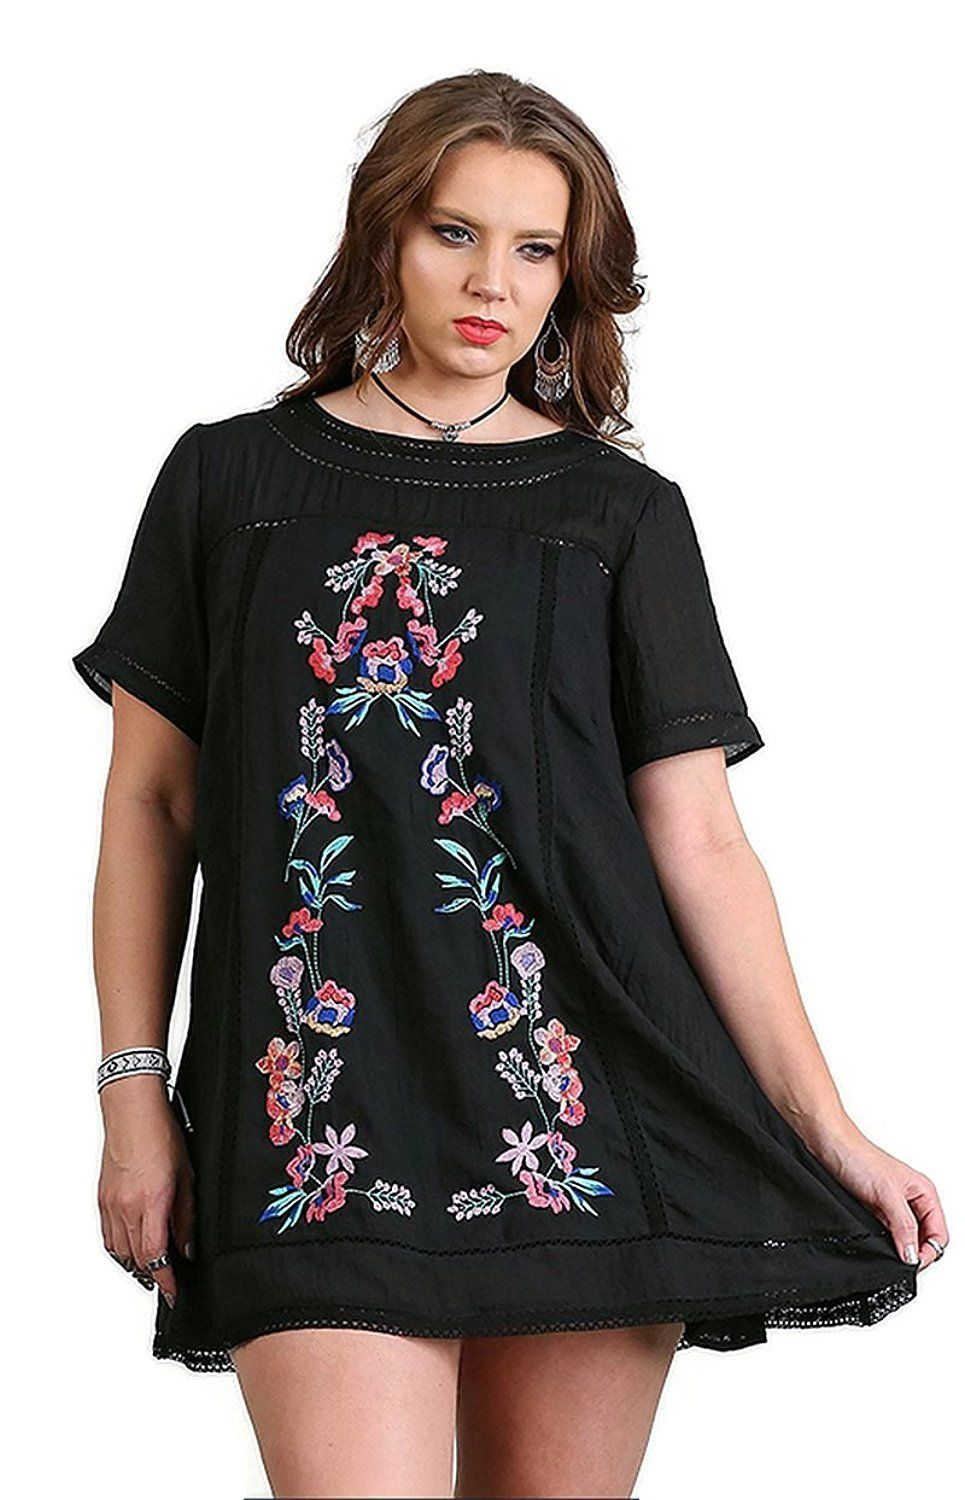 umgee women's boho chic a-line floral embroidered dress plus size